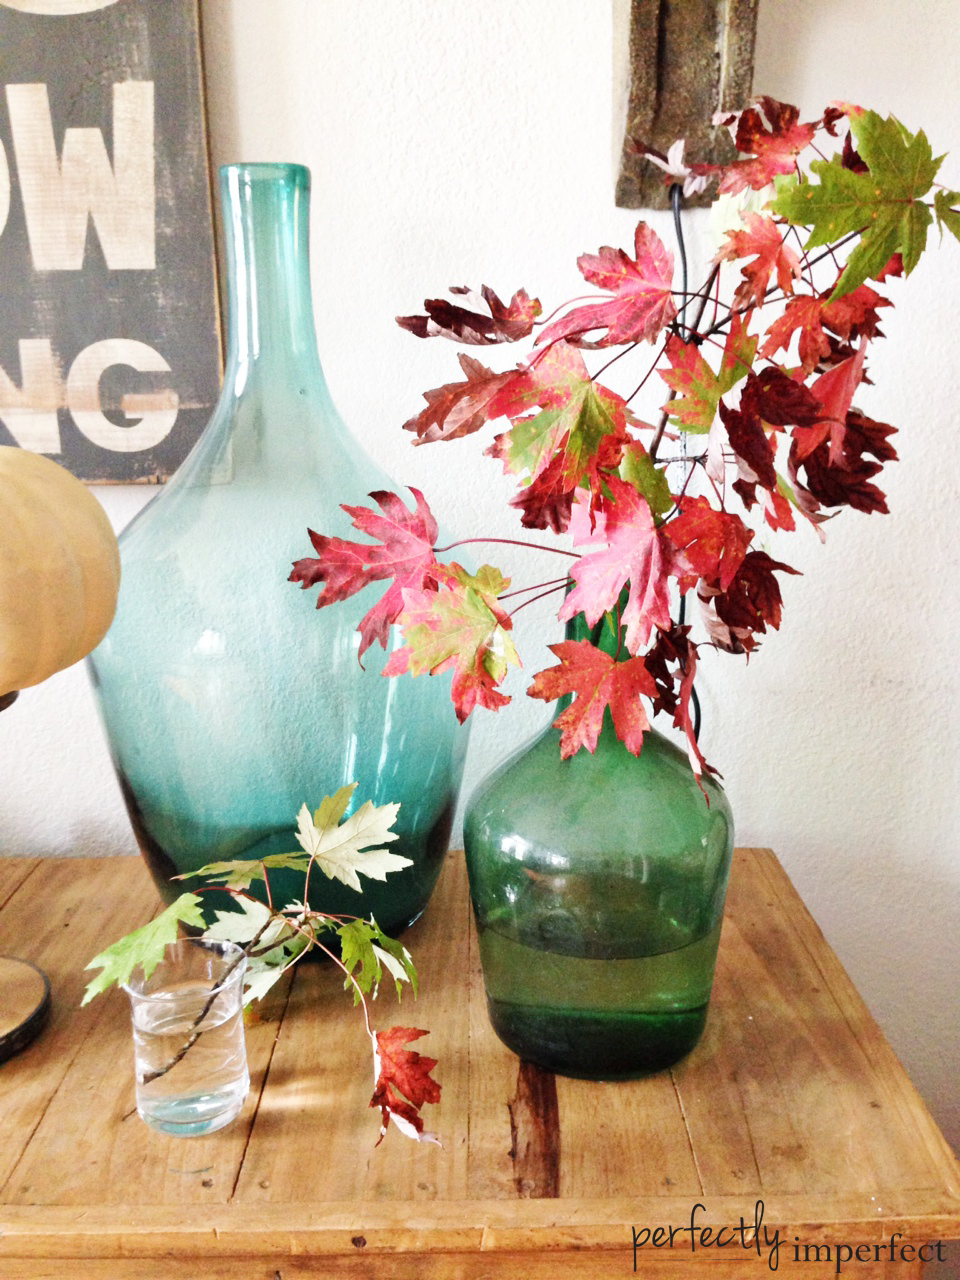 Perfectly Imperfect Fall Entry Decor